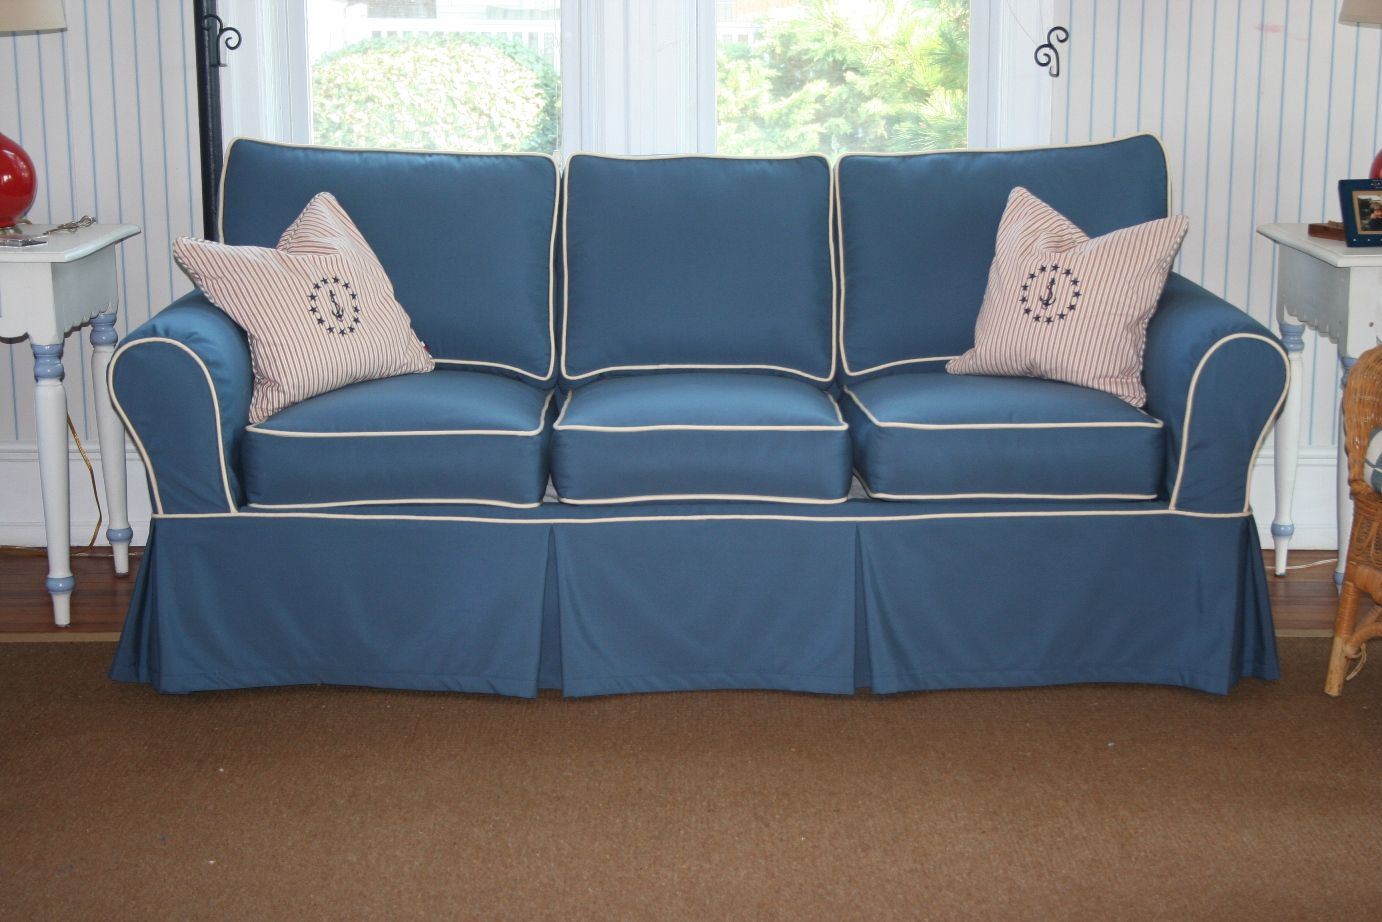 Beach House Sofa Slipcover The Best Bed Australia Using Sunbrella Sapphire Blue With Vellum